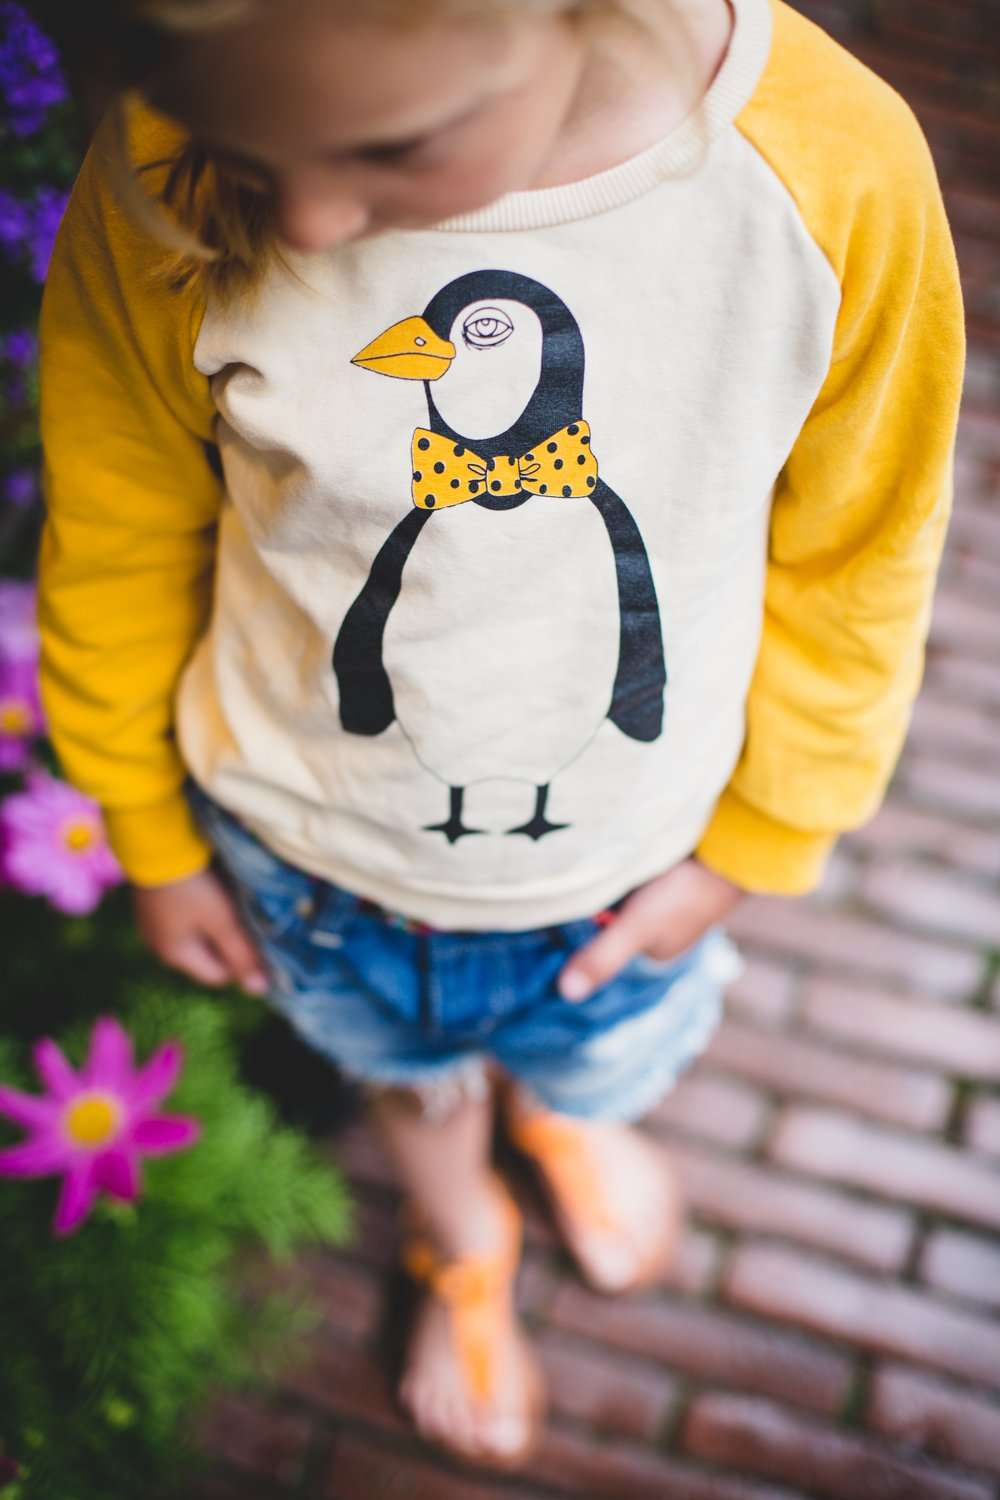 Kindermodeblog kinder kleding hip trends mode kids-96